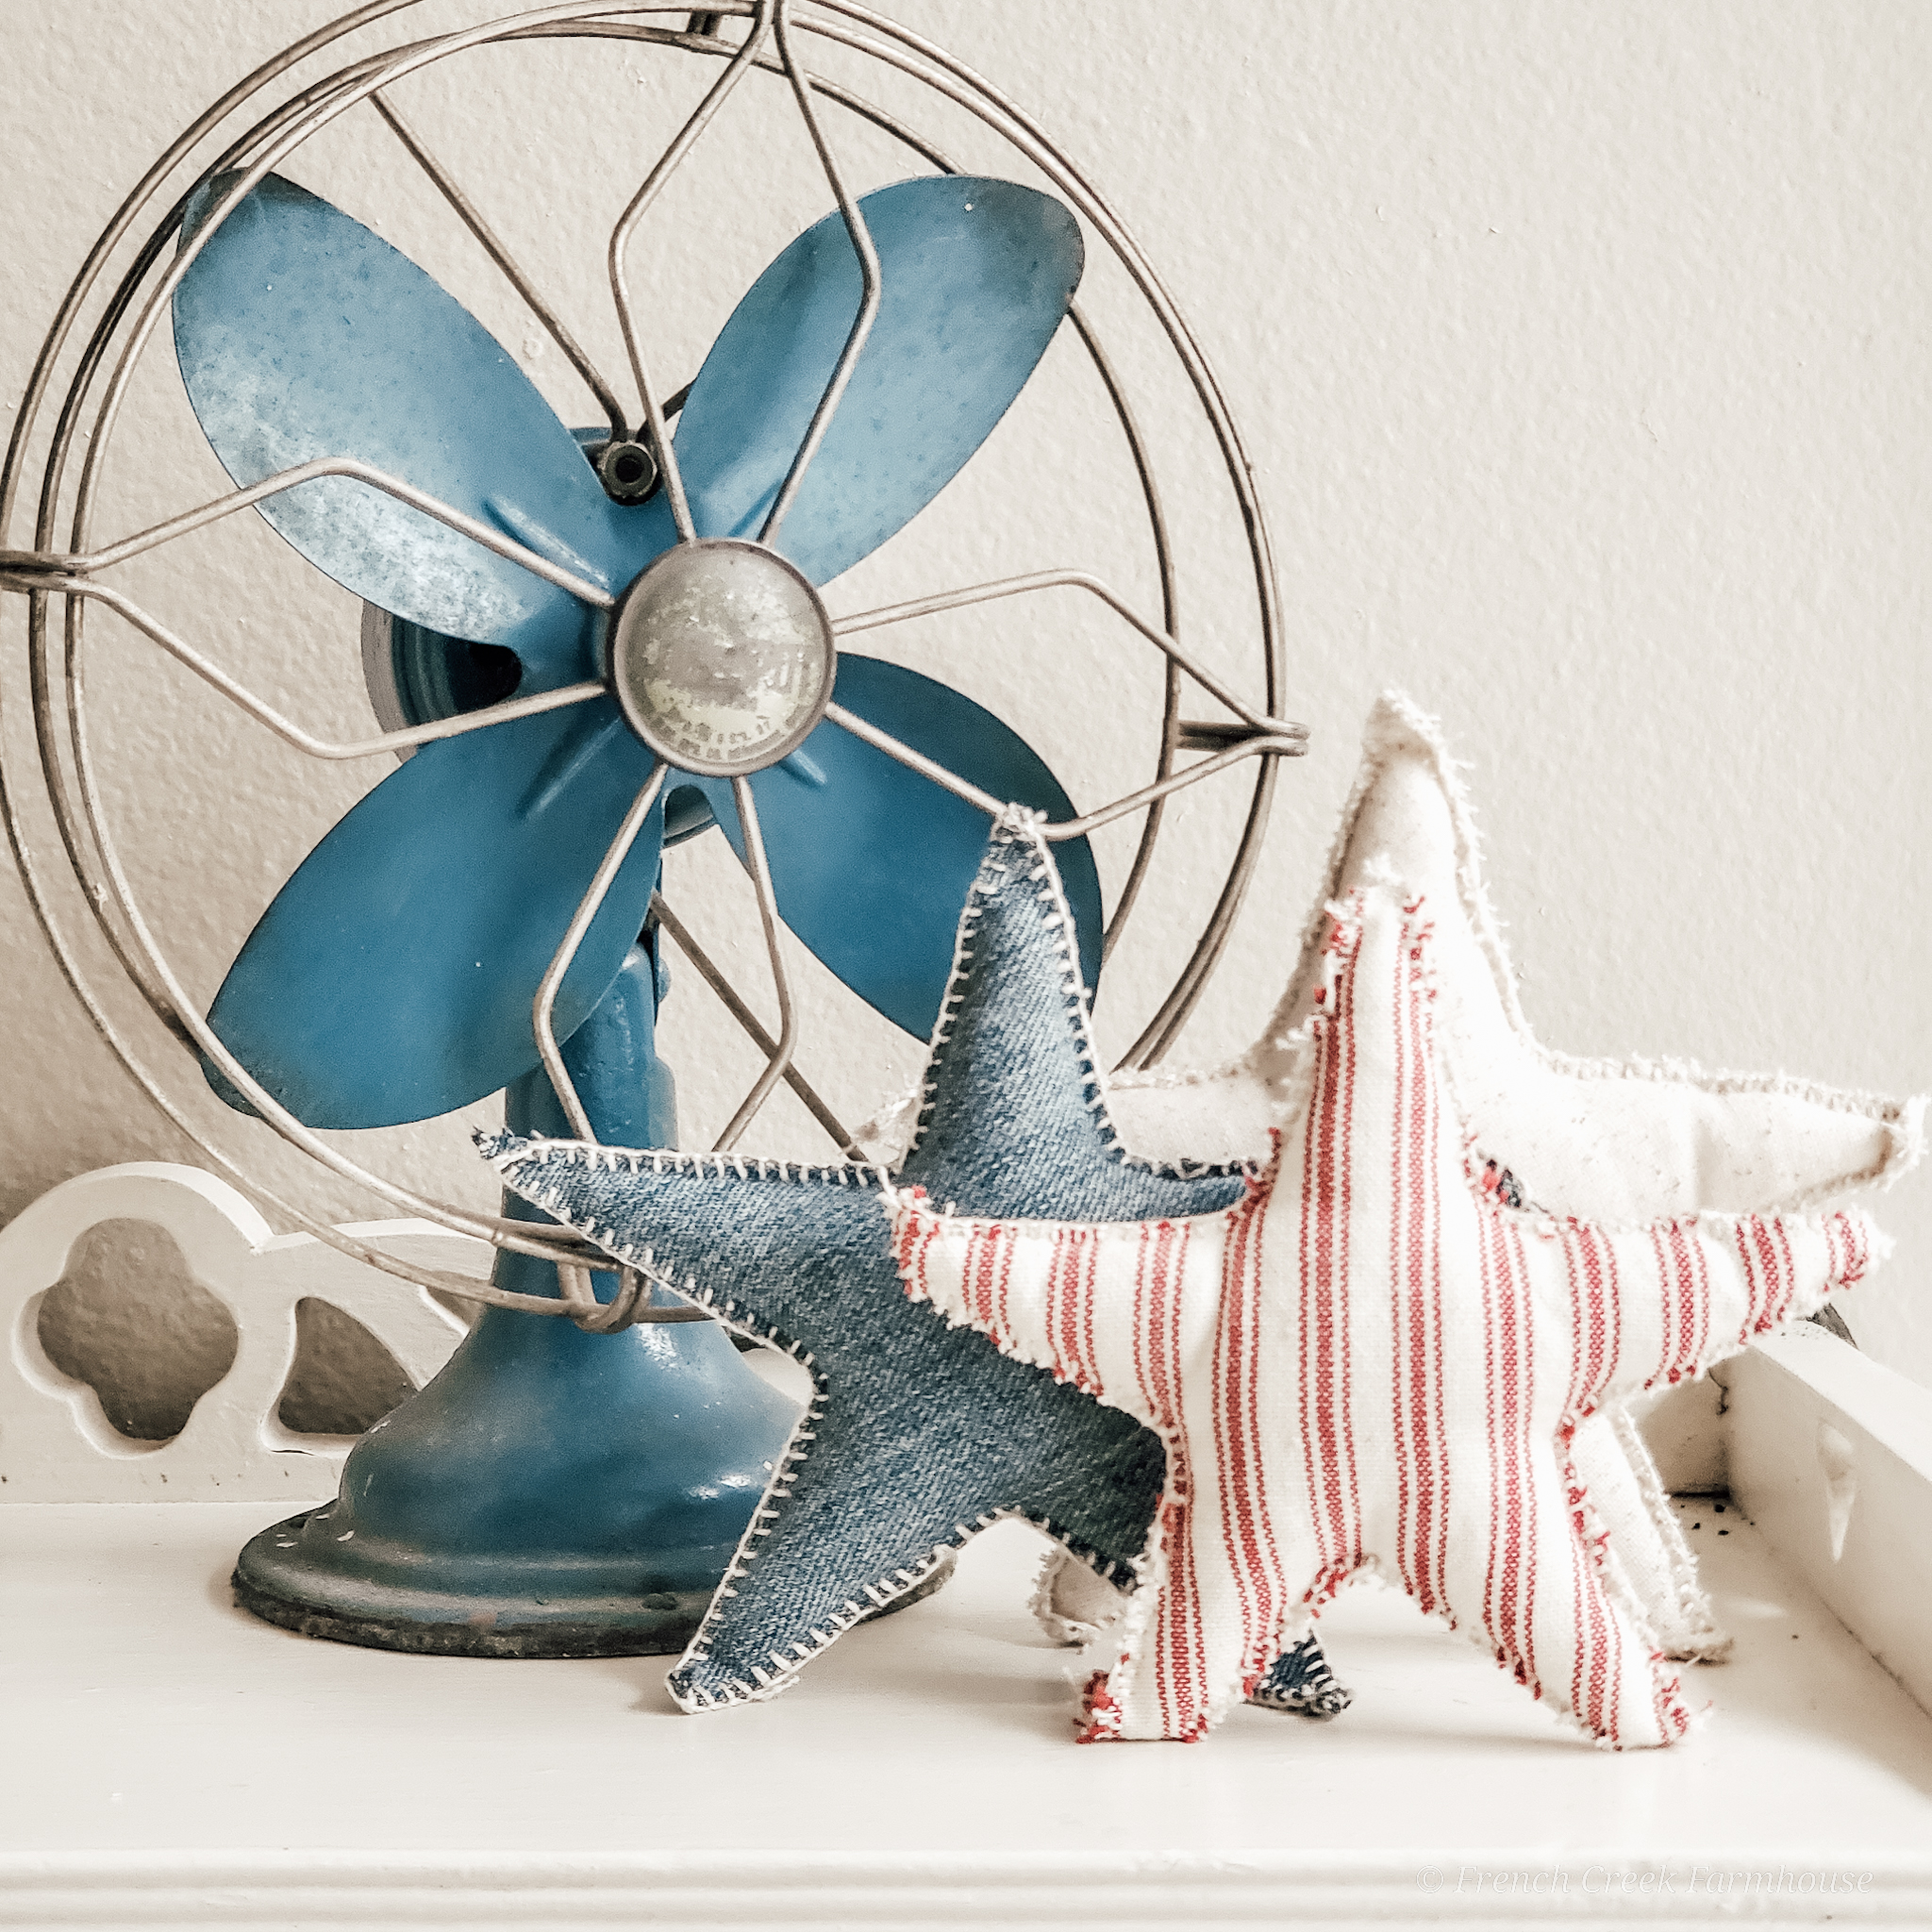 These stars are perfect for tucking into shelves